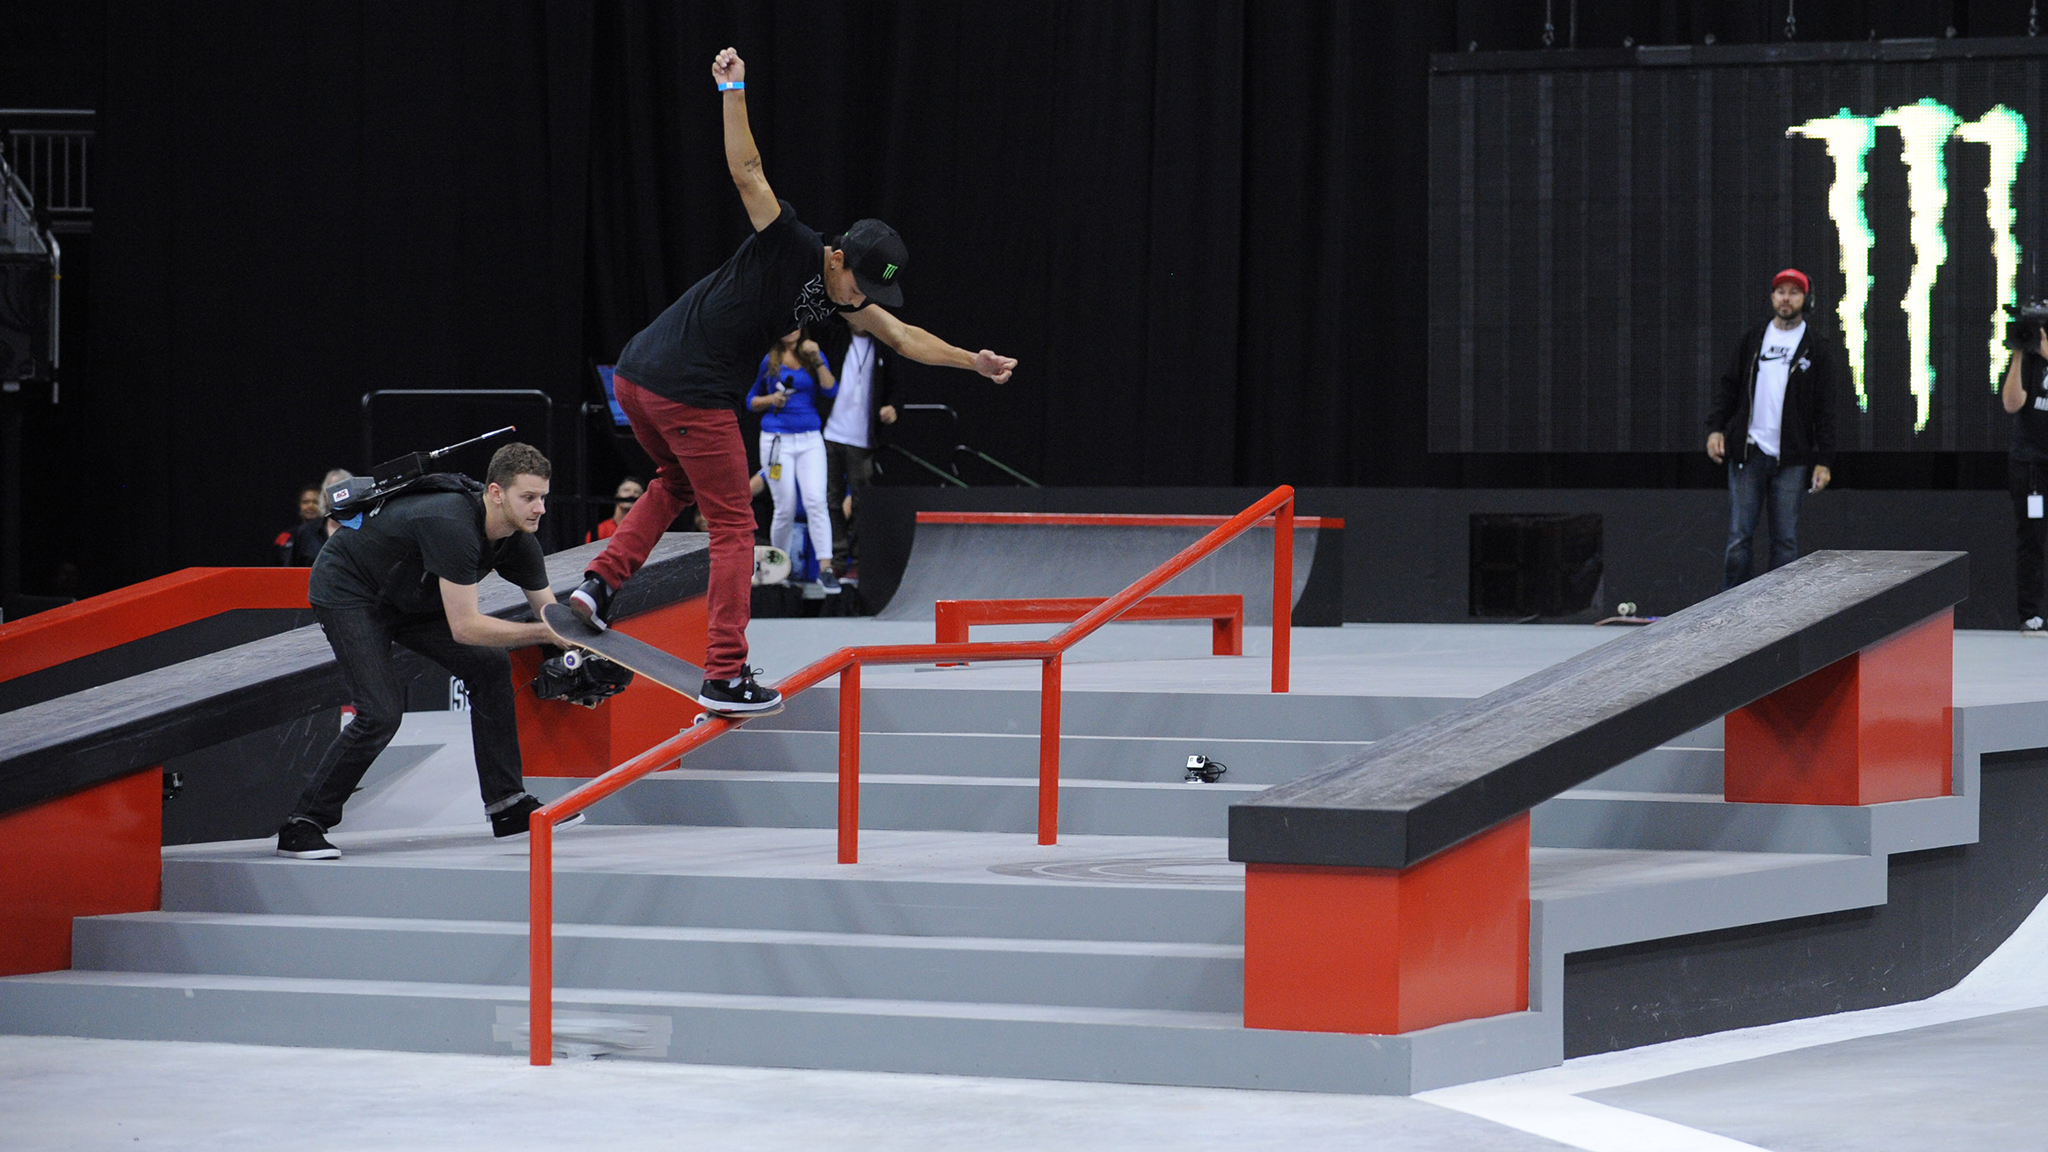 Nyjah Huston skates to his third consecutive Street League victory of the season in Kansas City.